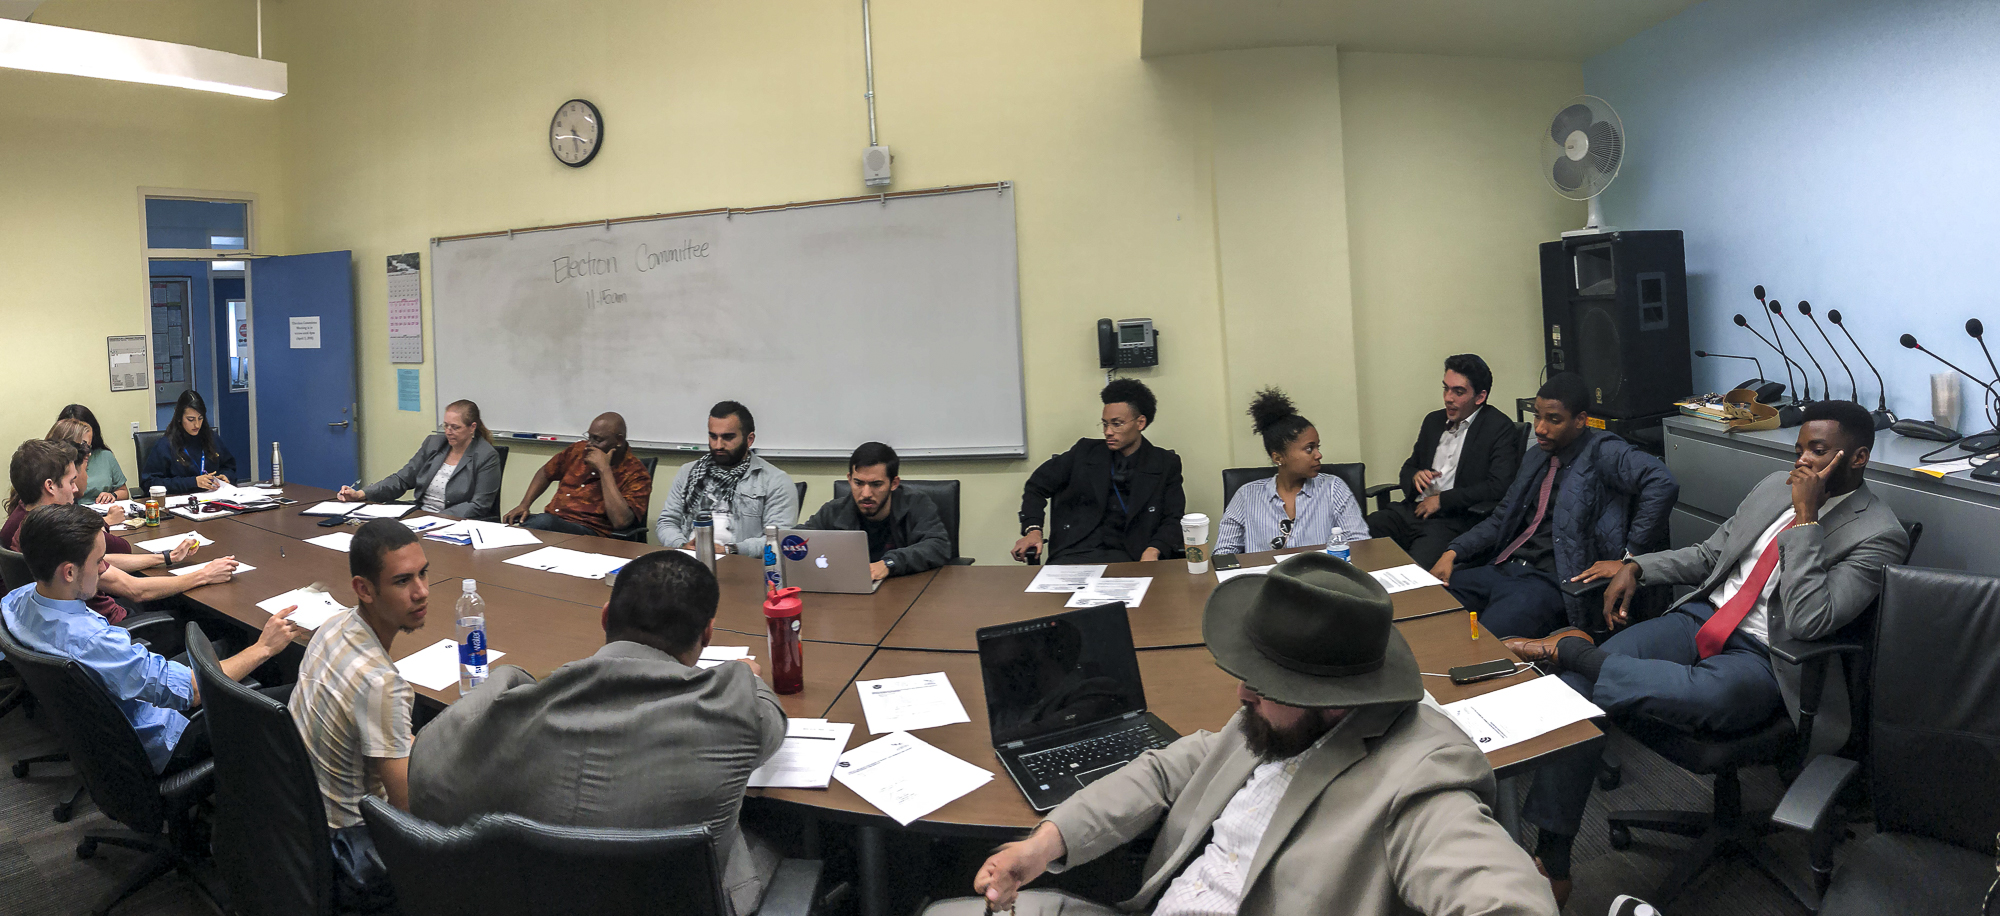 The Election Committee Members discuss a variety of filed violations amongst committee members and Associated Student candidates at the election committee meeting held in the conference room in the Cayton Center on Santa Monica College's main campus in Santa Monica, California on Tuesday, April 3, 2018. (Ryanne Mena/Corsair Photo)